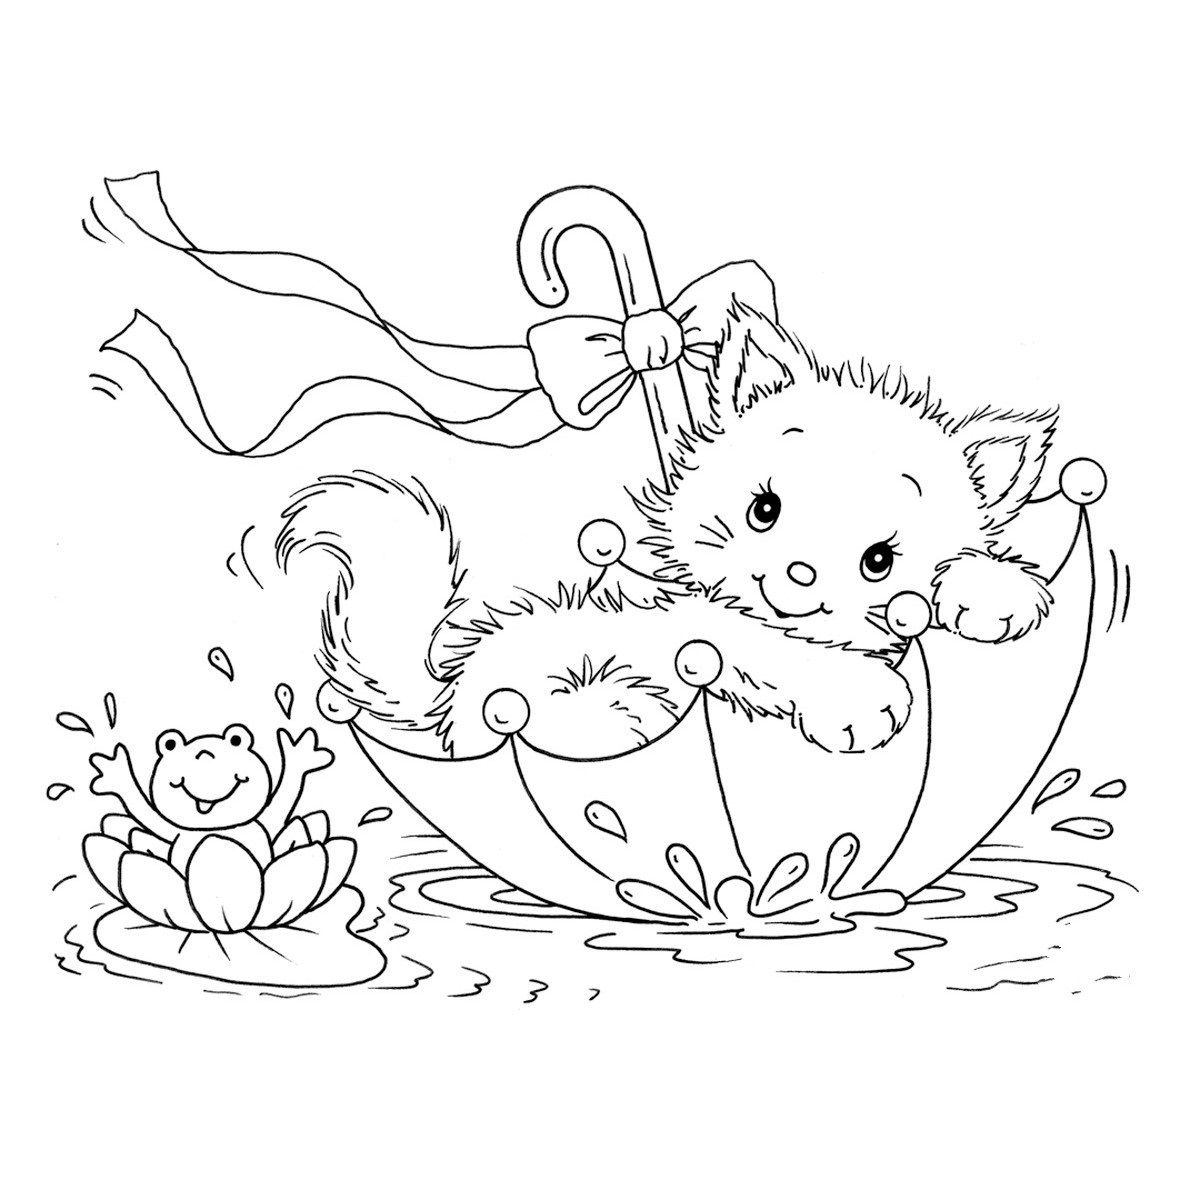 kitten coloring free printable cat coloring pages for kids kitten coloring